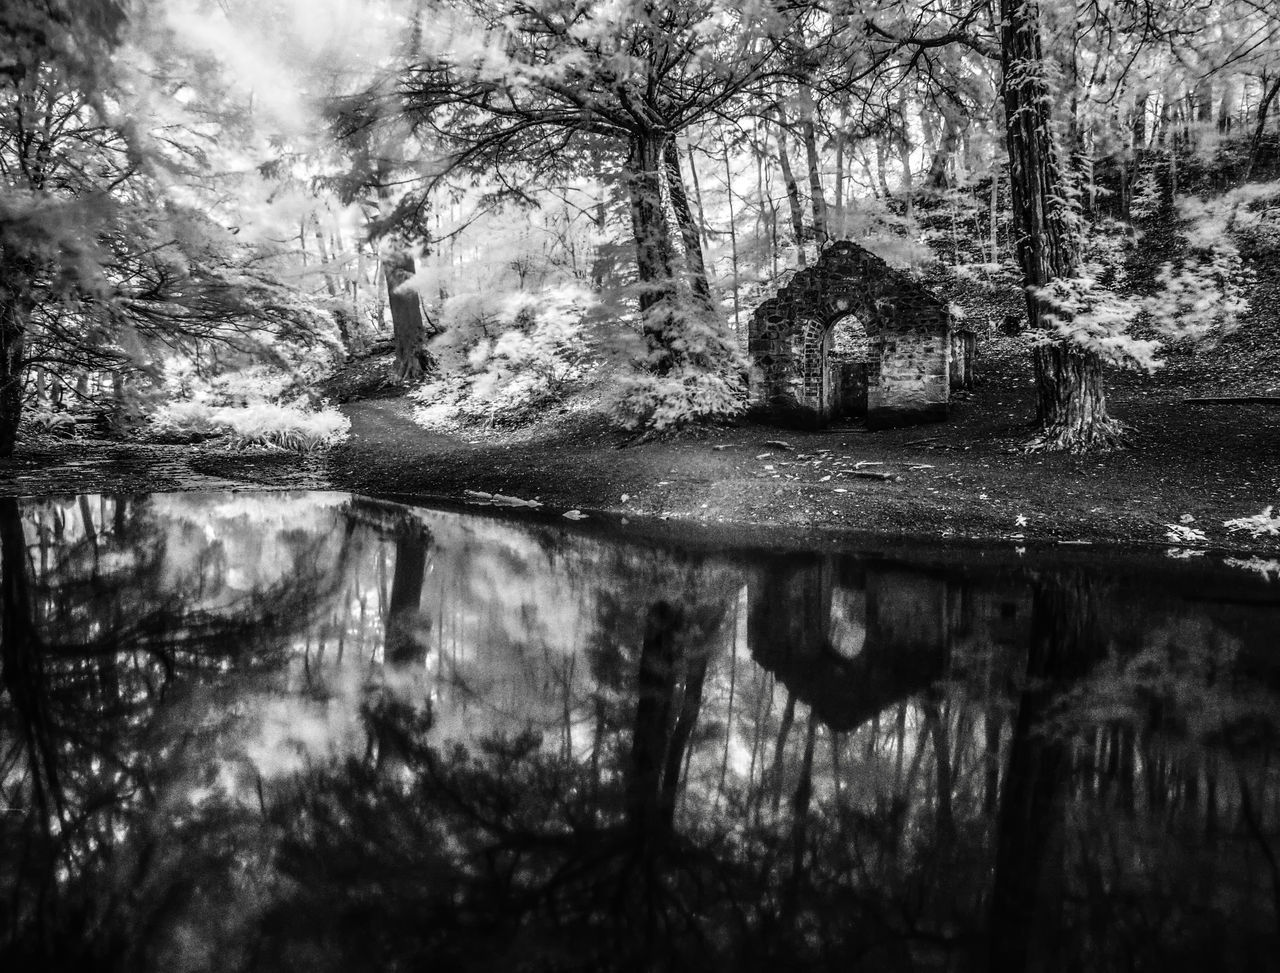 Gothic Folly in Rectory Wood, Church Stretton, Shropshire, England. Beauty In Nature Close-up Day Gothic Growth Idyllic Infrared Lake Lakeshore Long Exposure Nature No People Non-urban Scene Outdoors Plant Reflection Scenics Sky Standing Water Tranquil Scene Tranquility Tree Water Weather